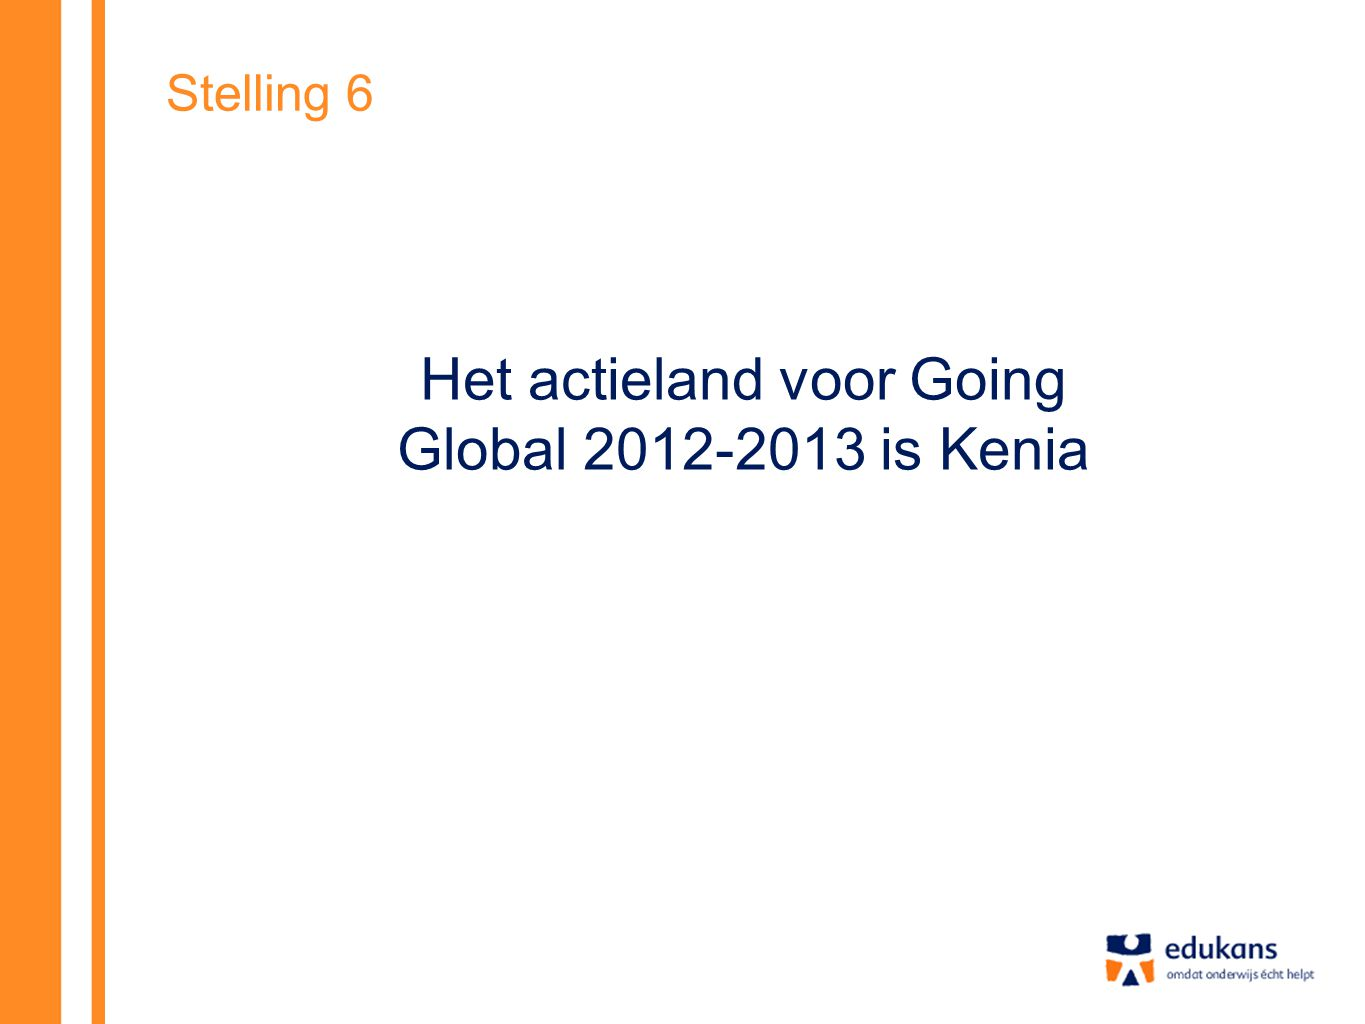 Het actieland voor Going Global is Kenia